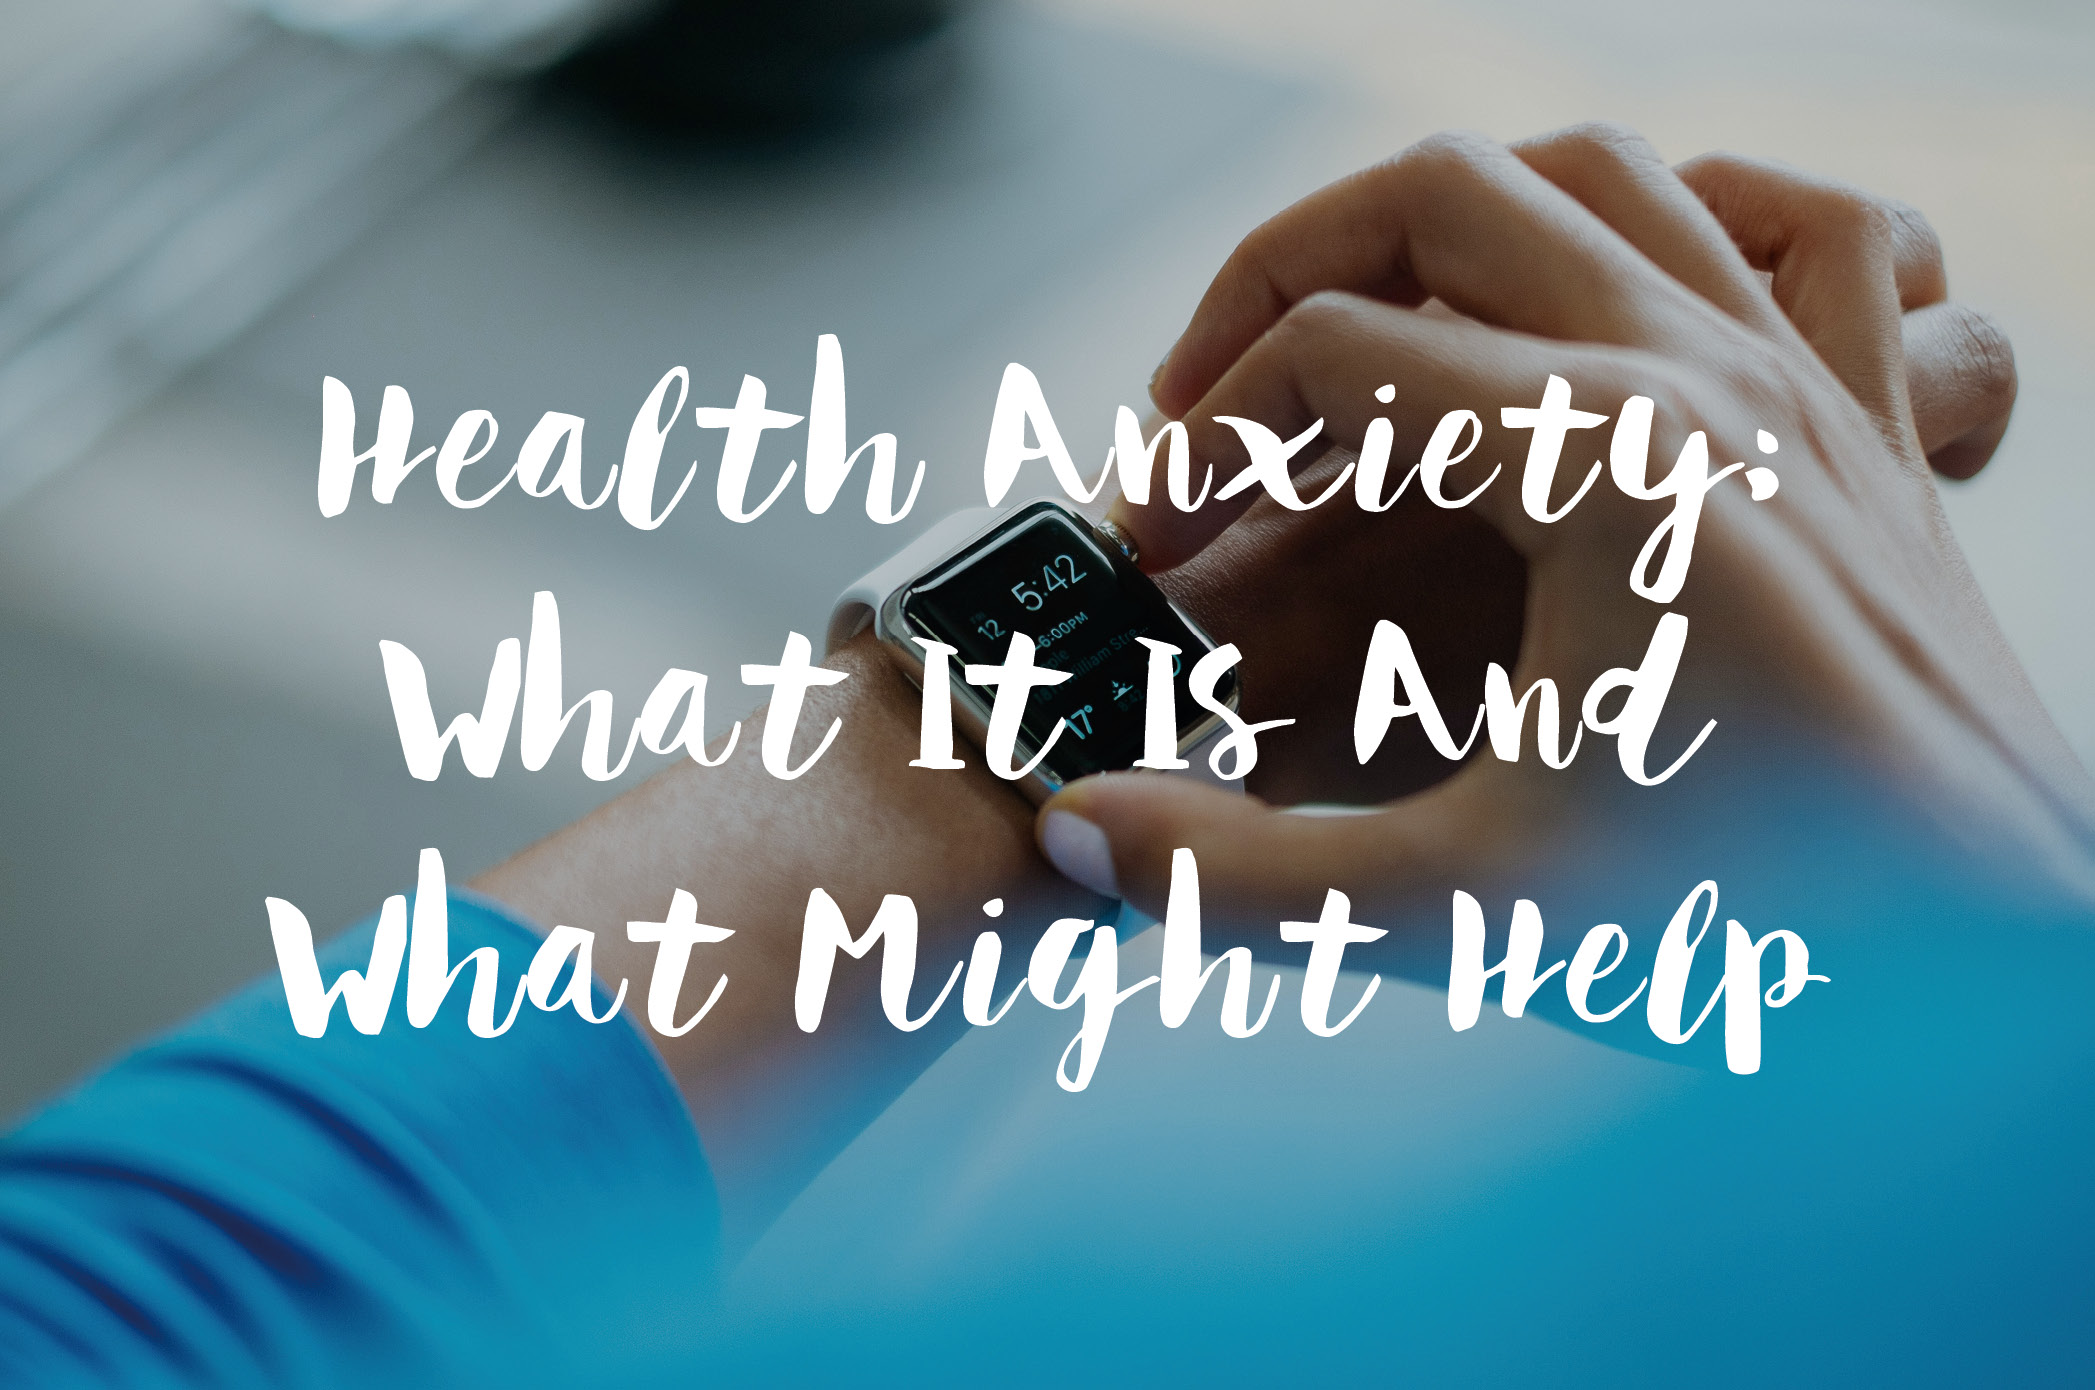 Health Anxiety: What It Is And What Might Help